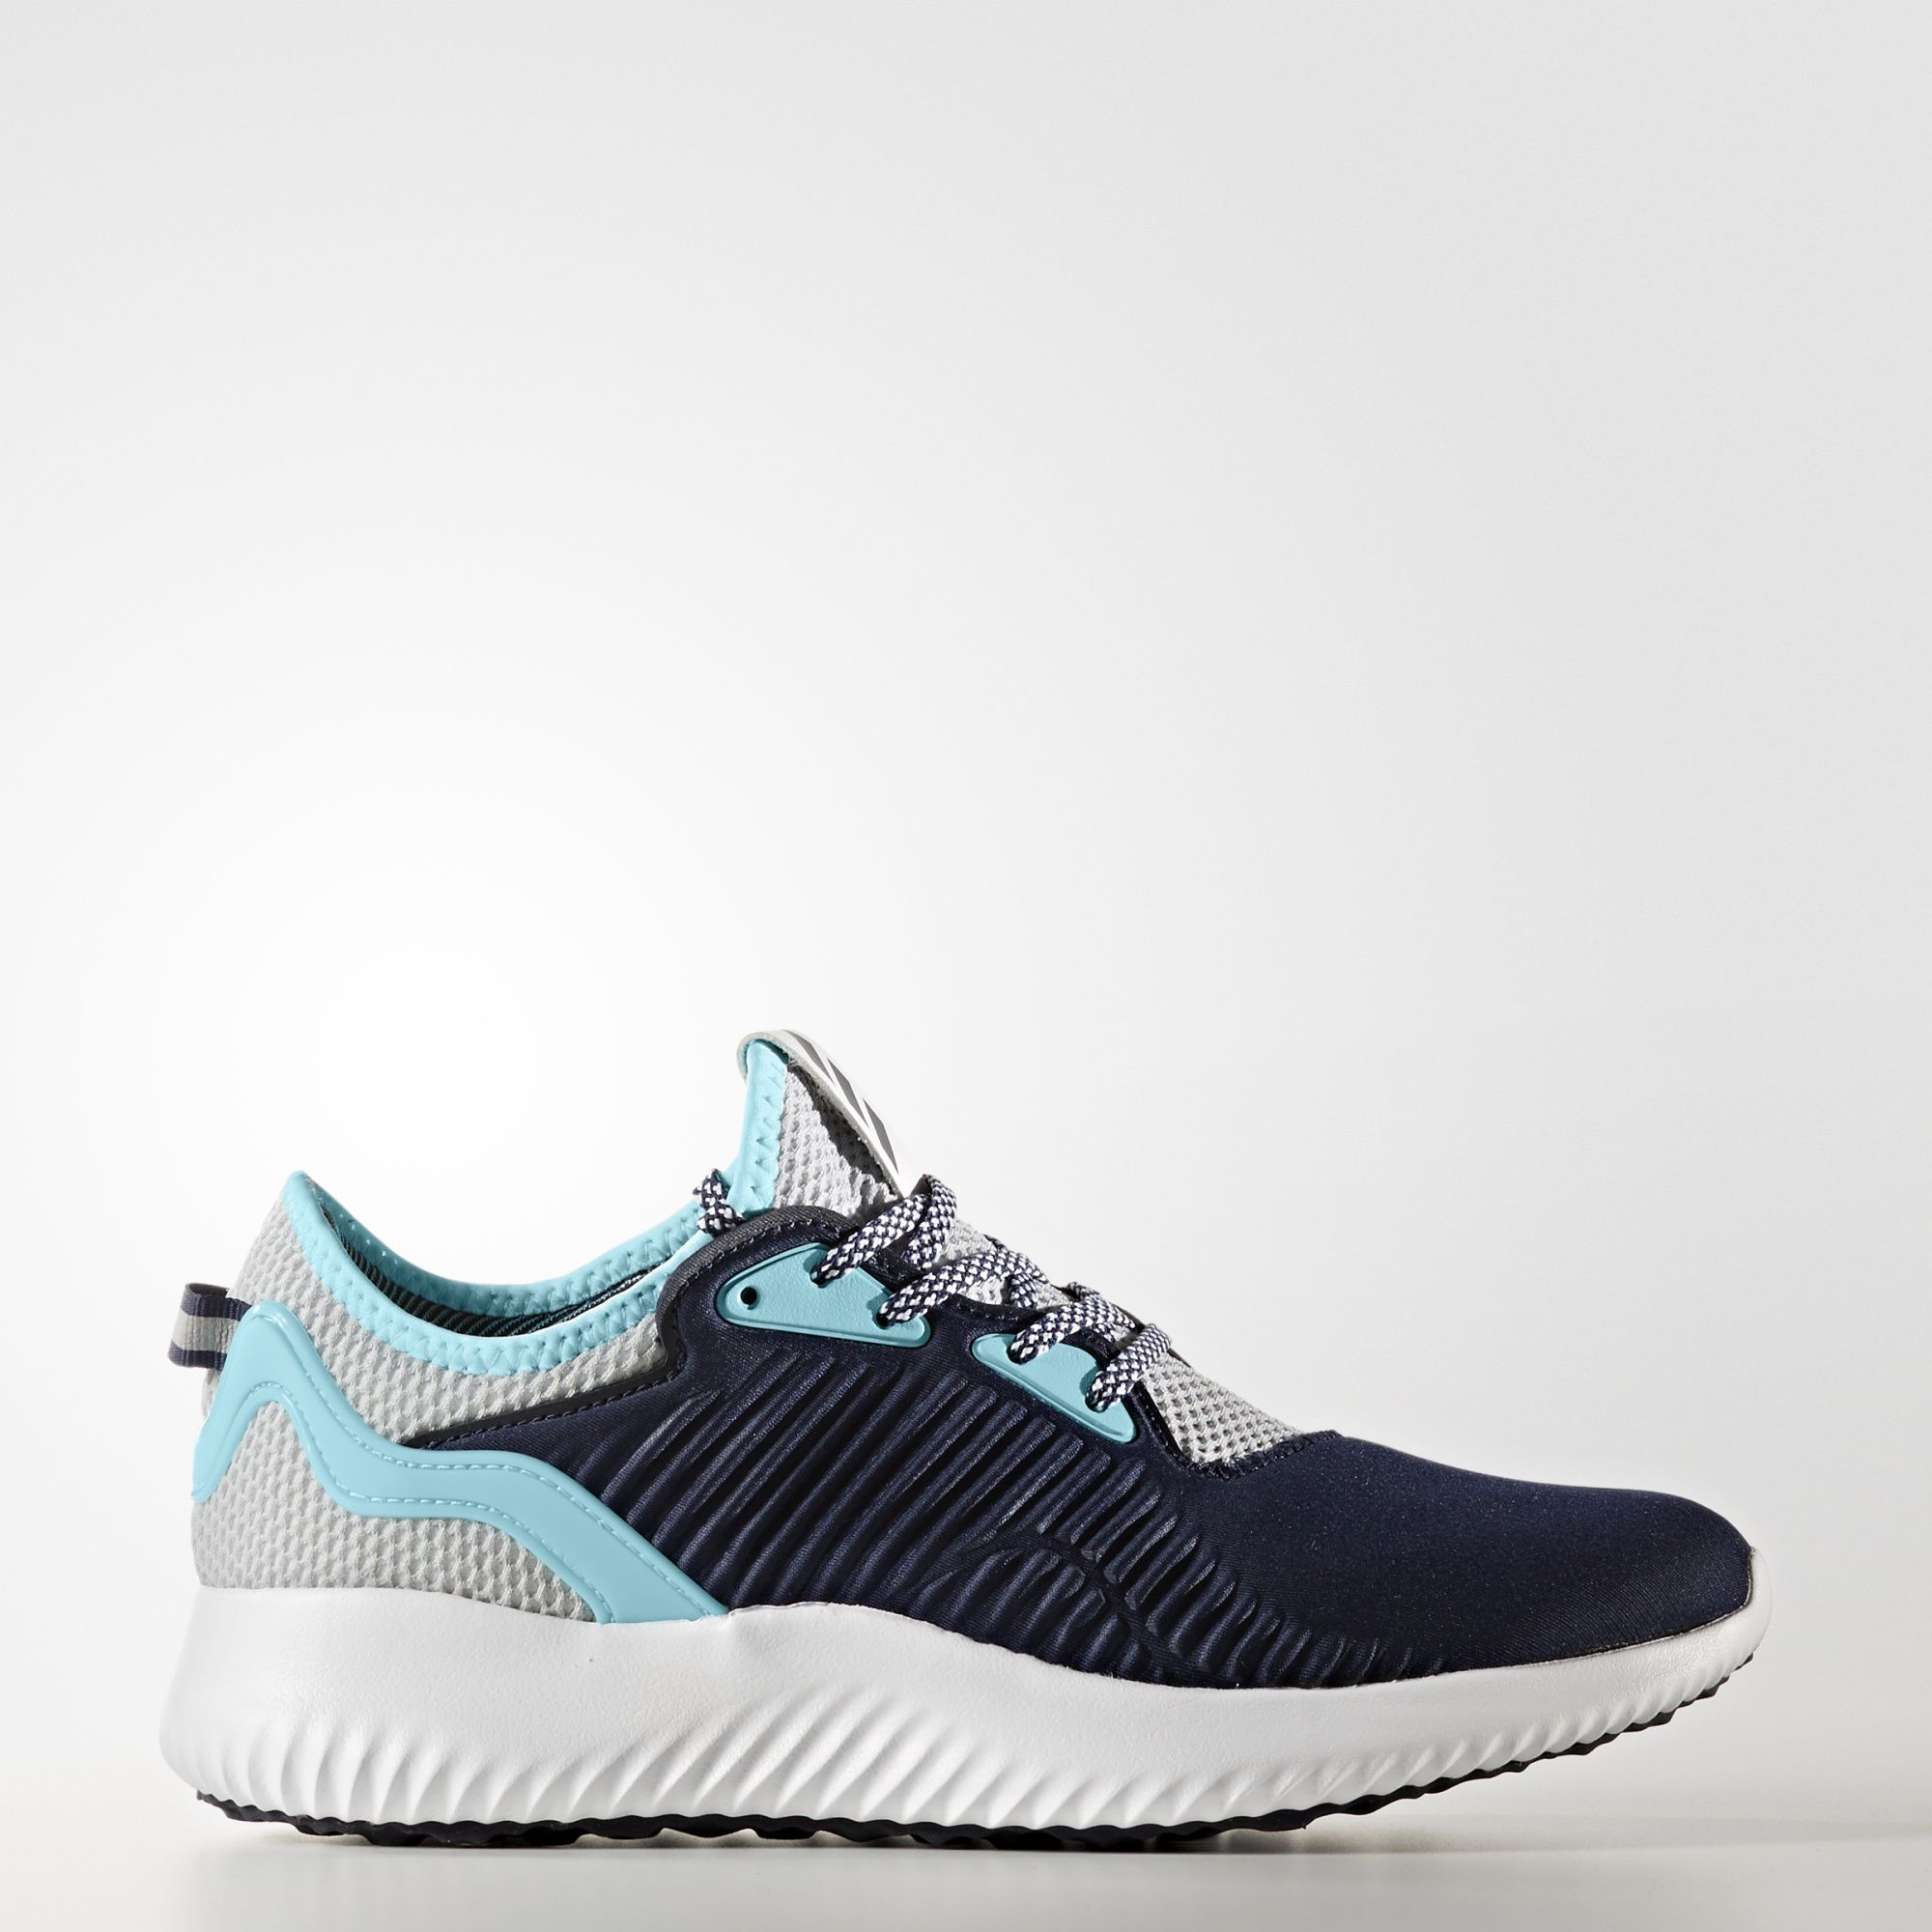 adidas - Alphabounce Lux Shoes